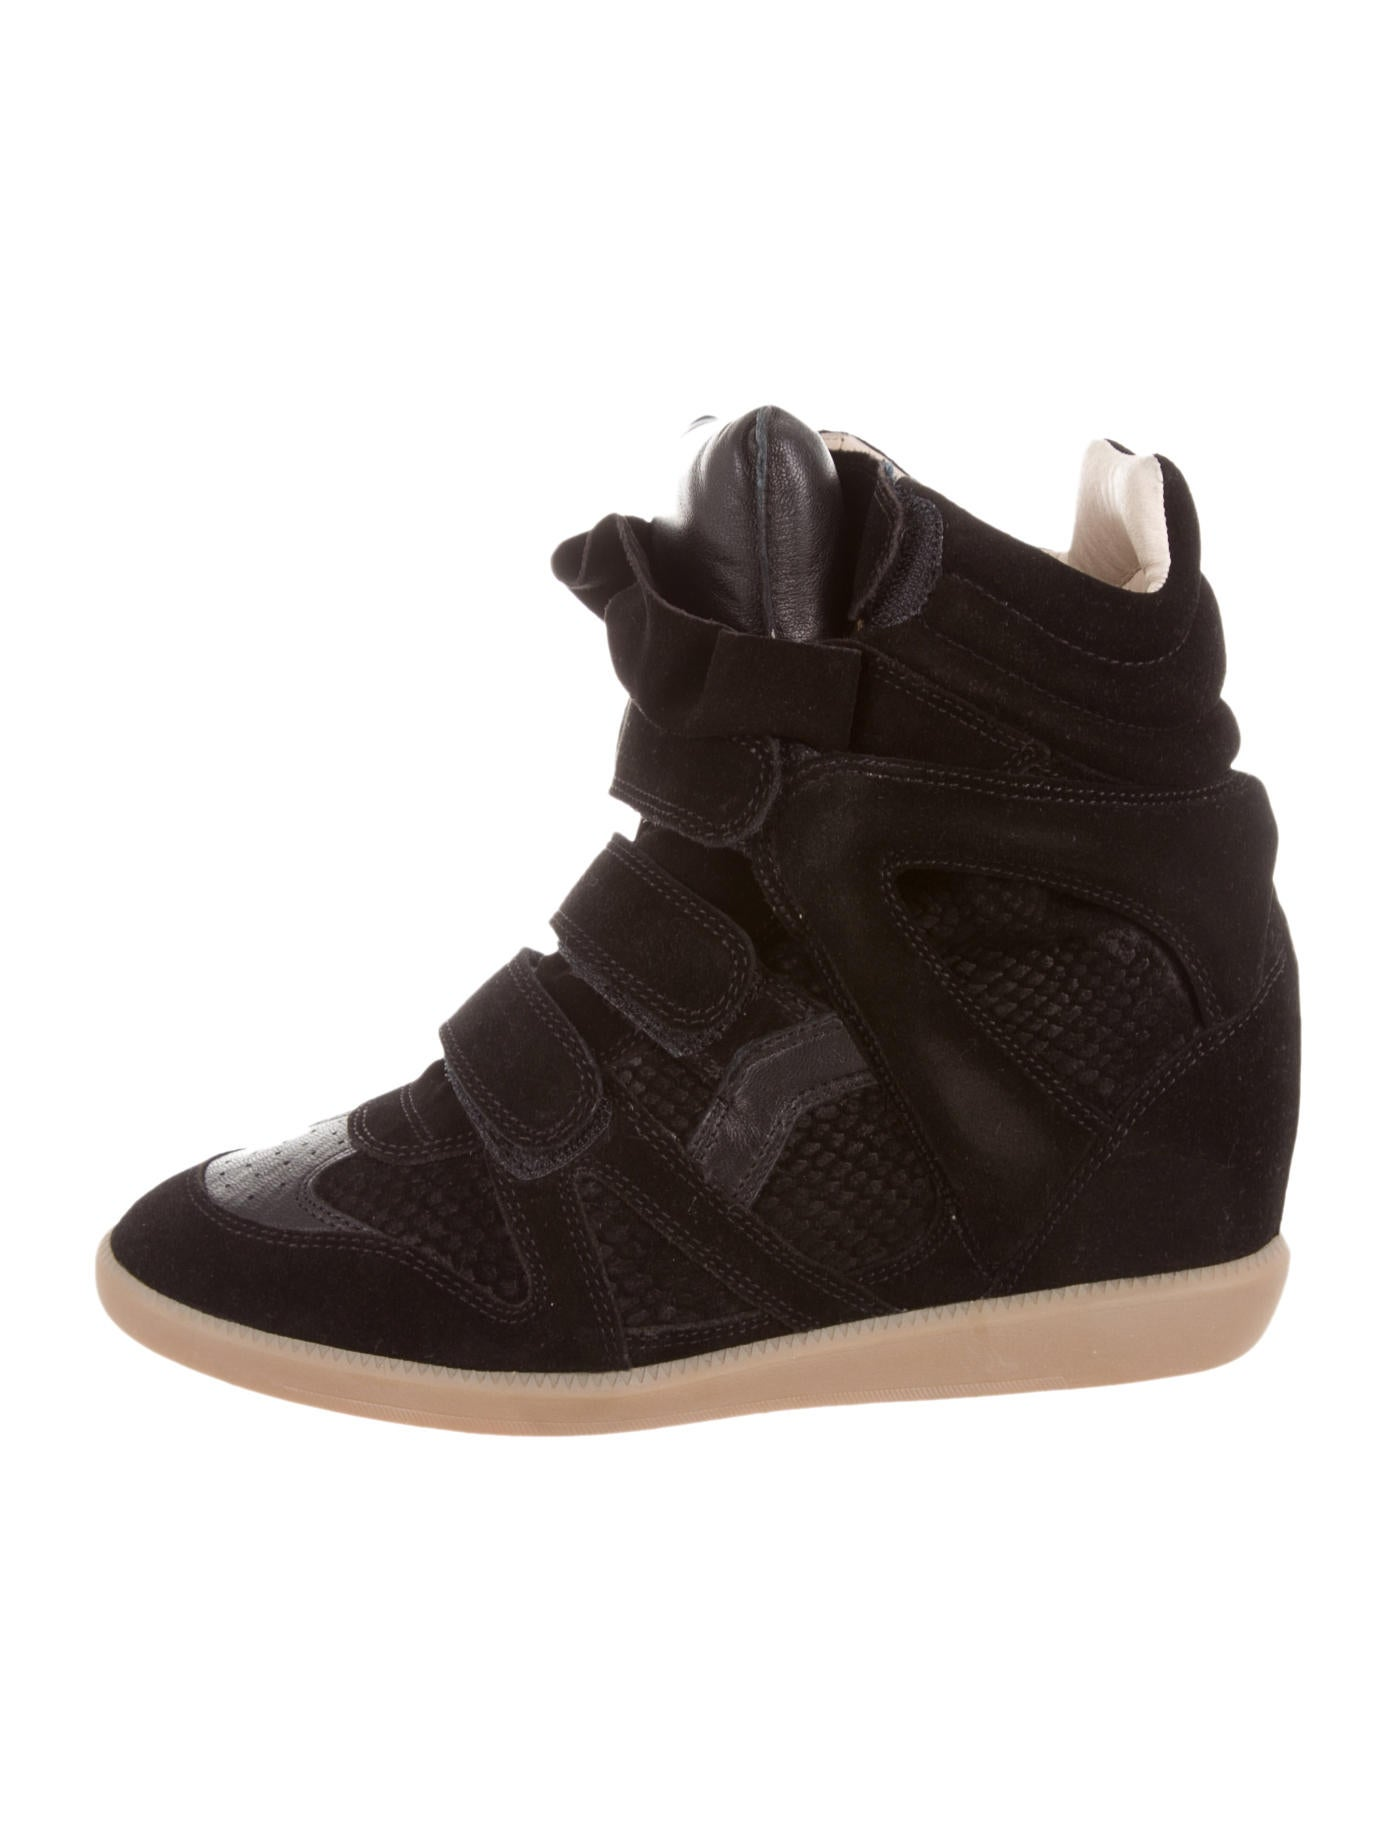 bf84930825d0 Isabel Marant Bazil Sneakers - Shoes - ISA28017